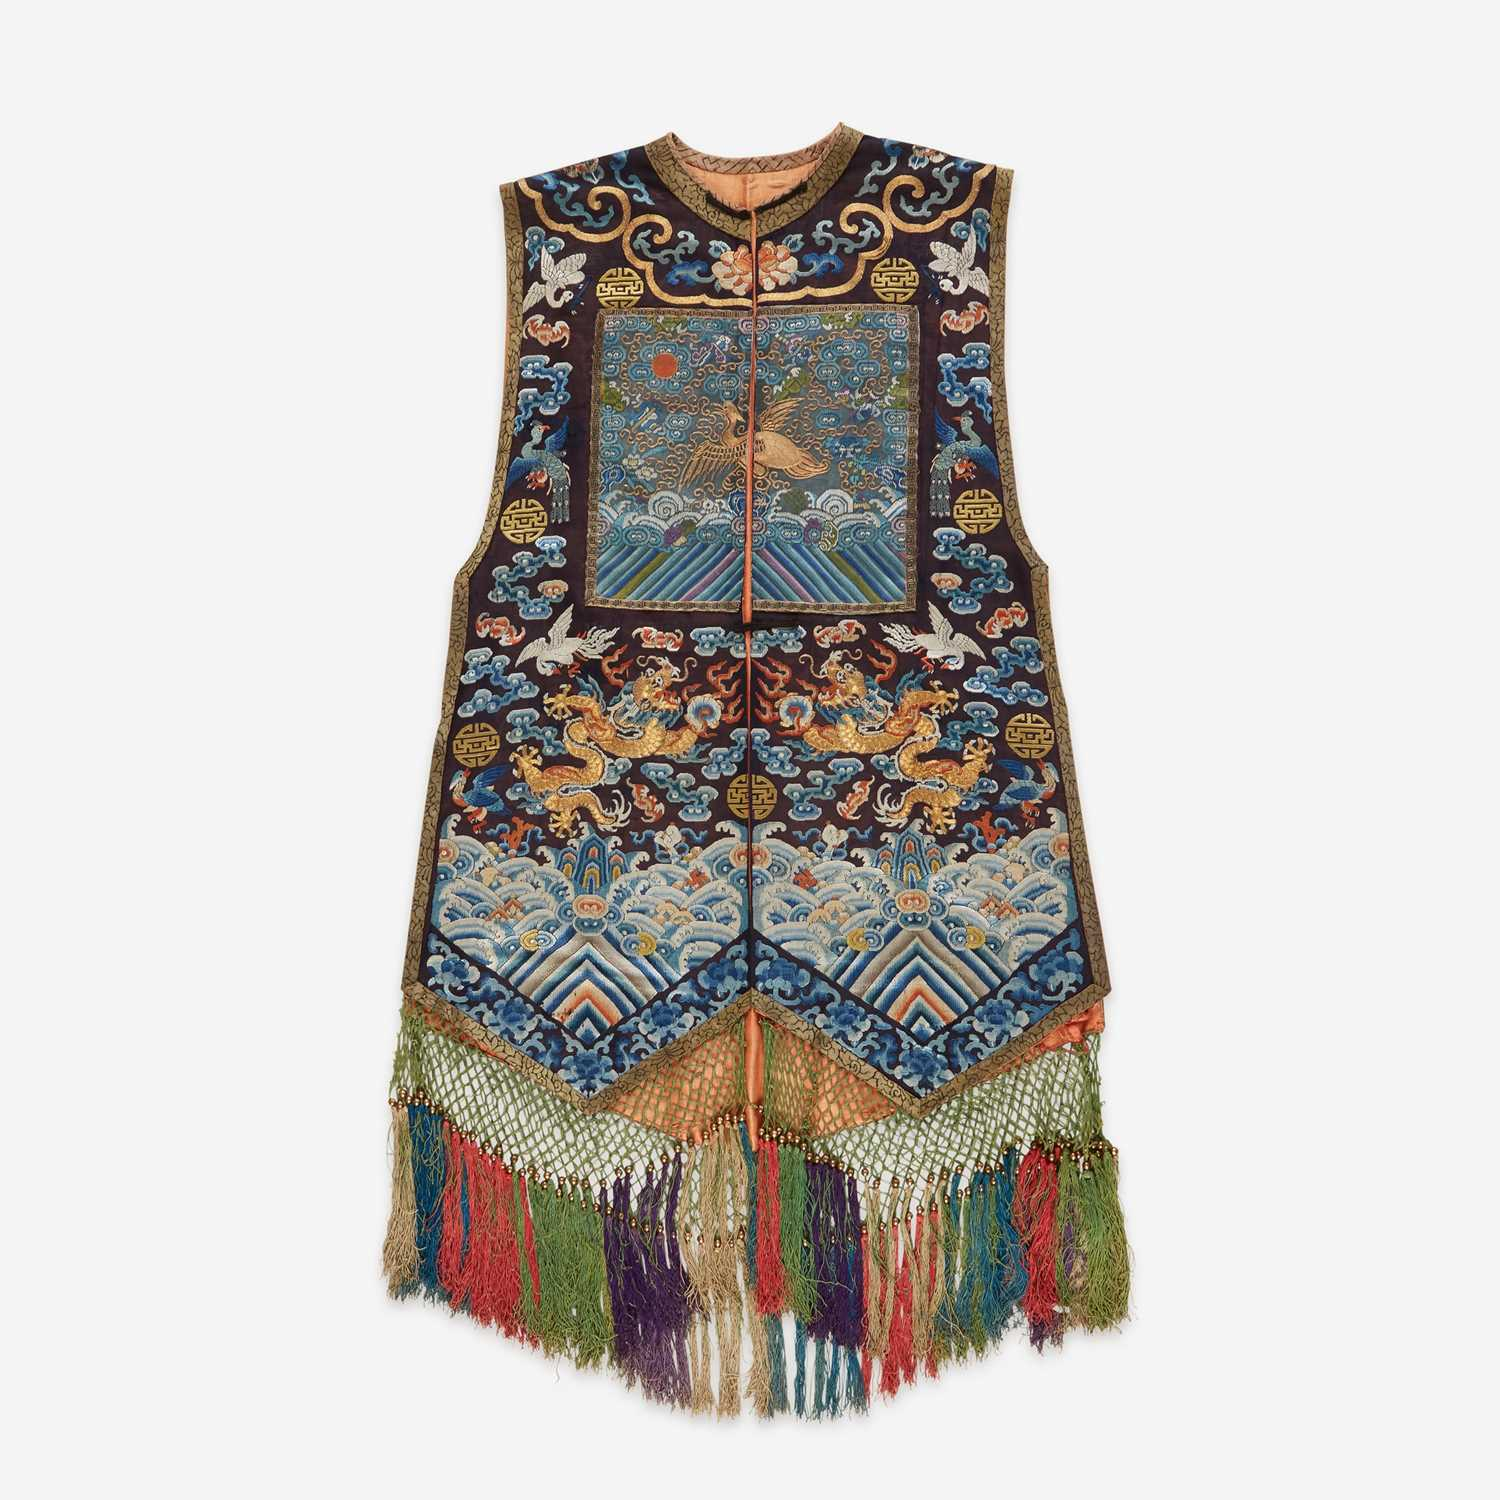 Lot 66 - An unusual Chinese embroidered gauze woman's vest, Xiapei 刺绣女士马甲霞帔